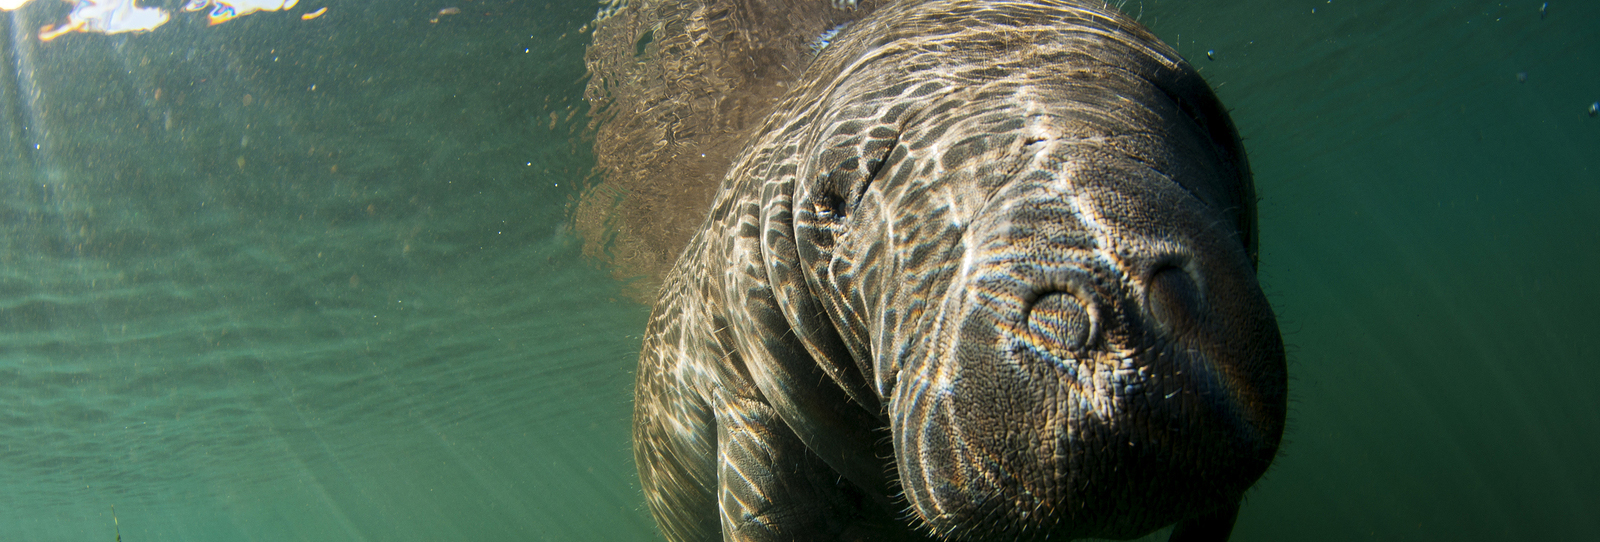 A manatee is photographed head on in Florida's Homosassa river.